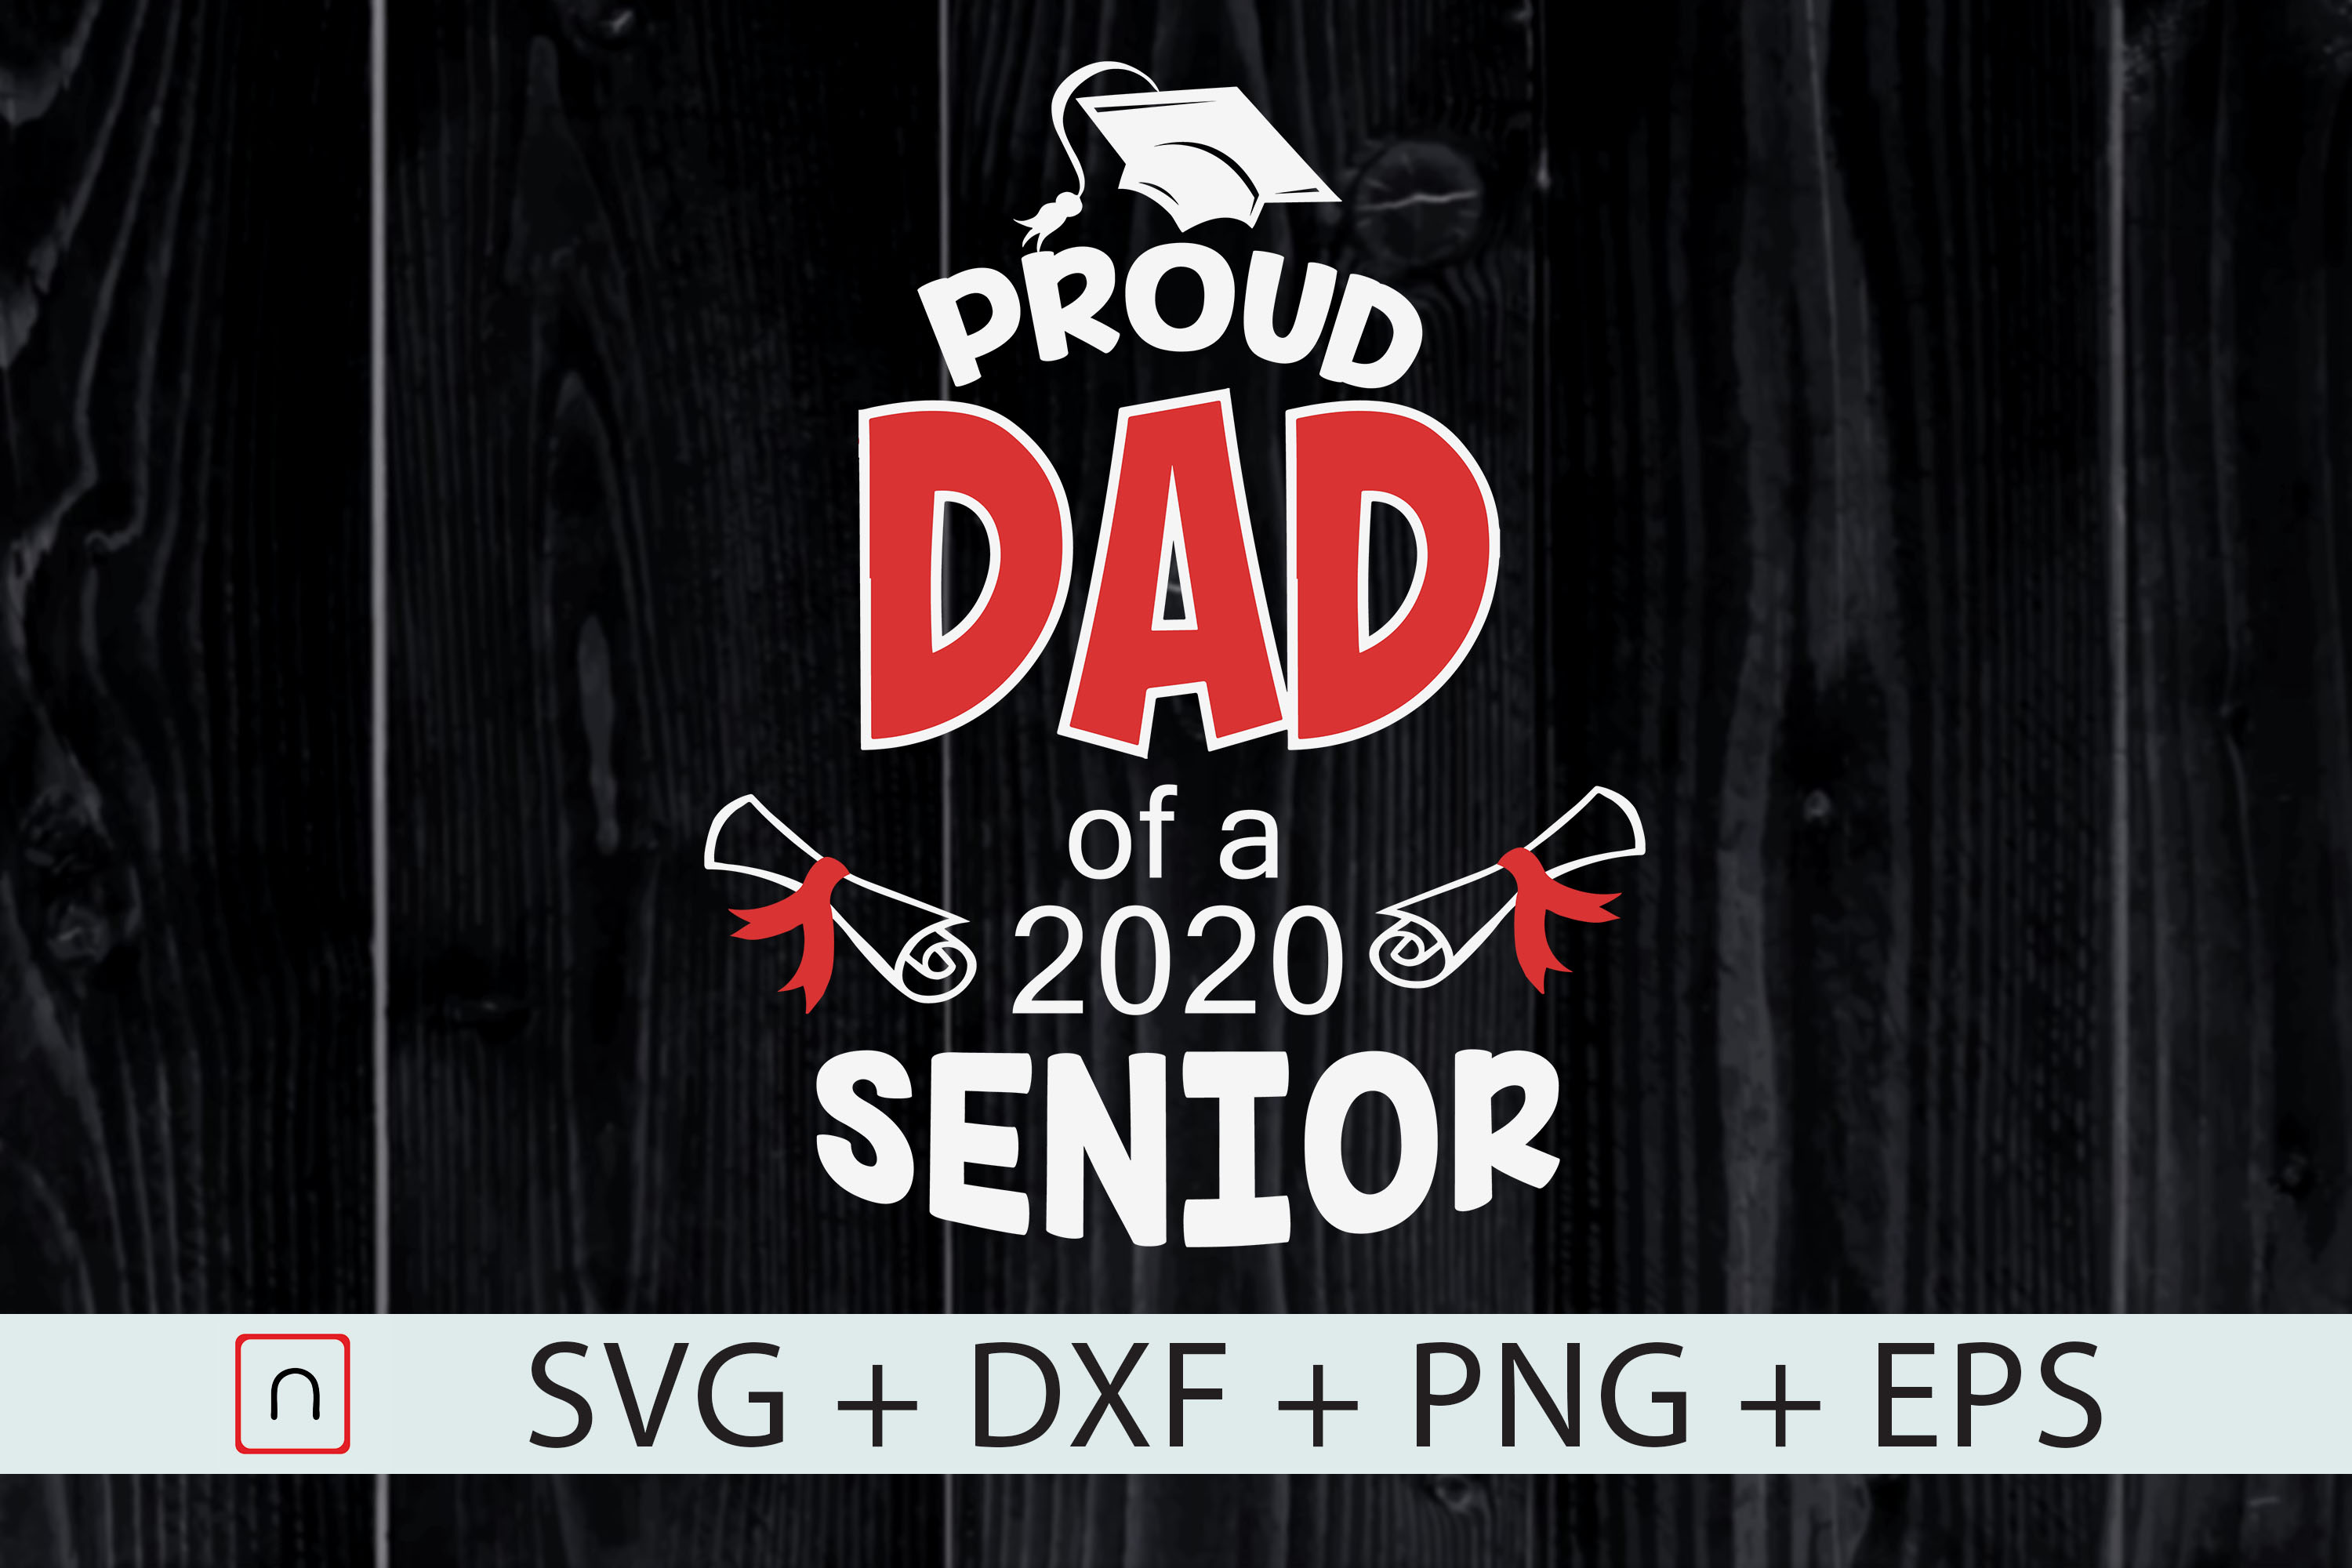 Funny Proud Dad Of 2020 Senior Cut File Graphic By Novalia